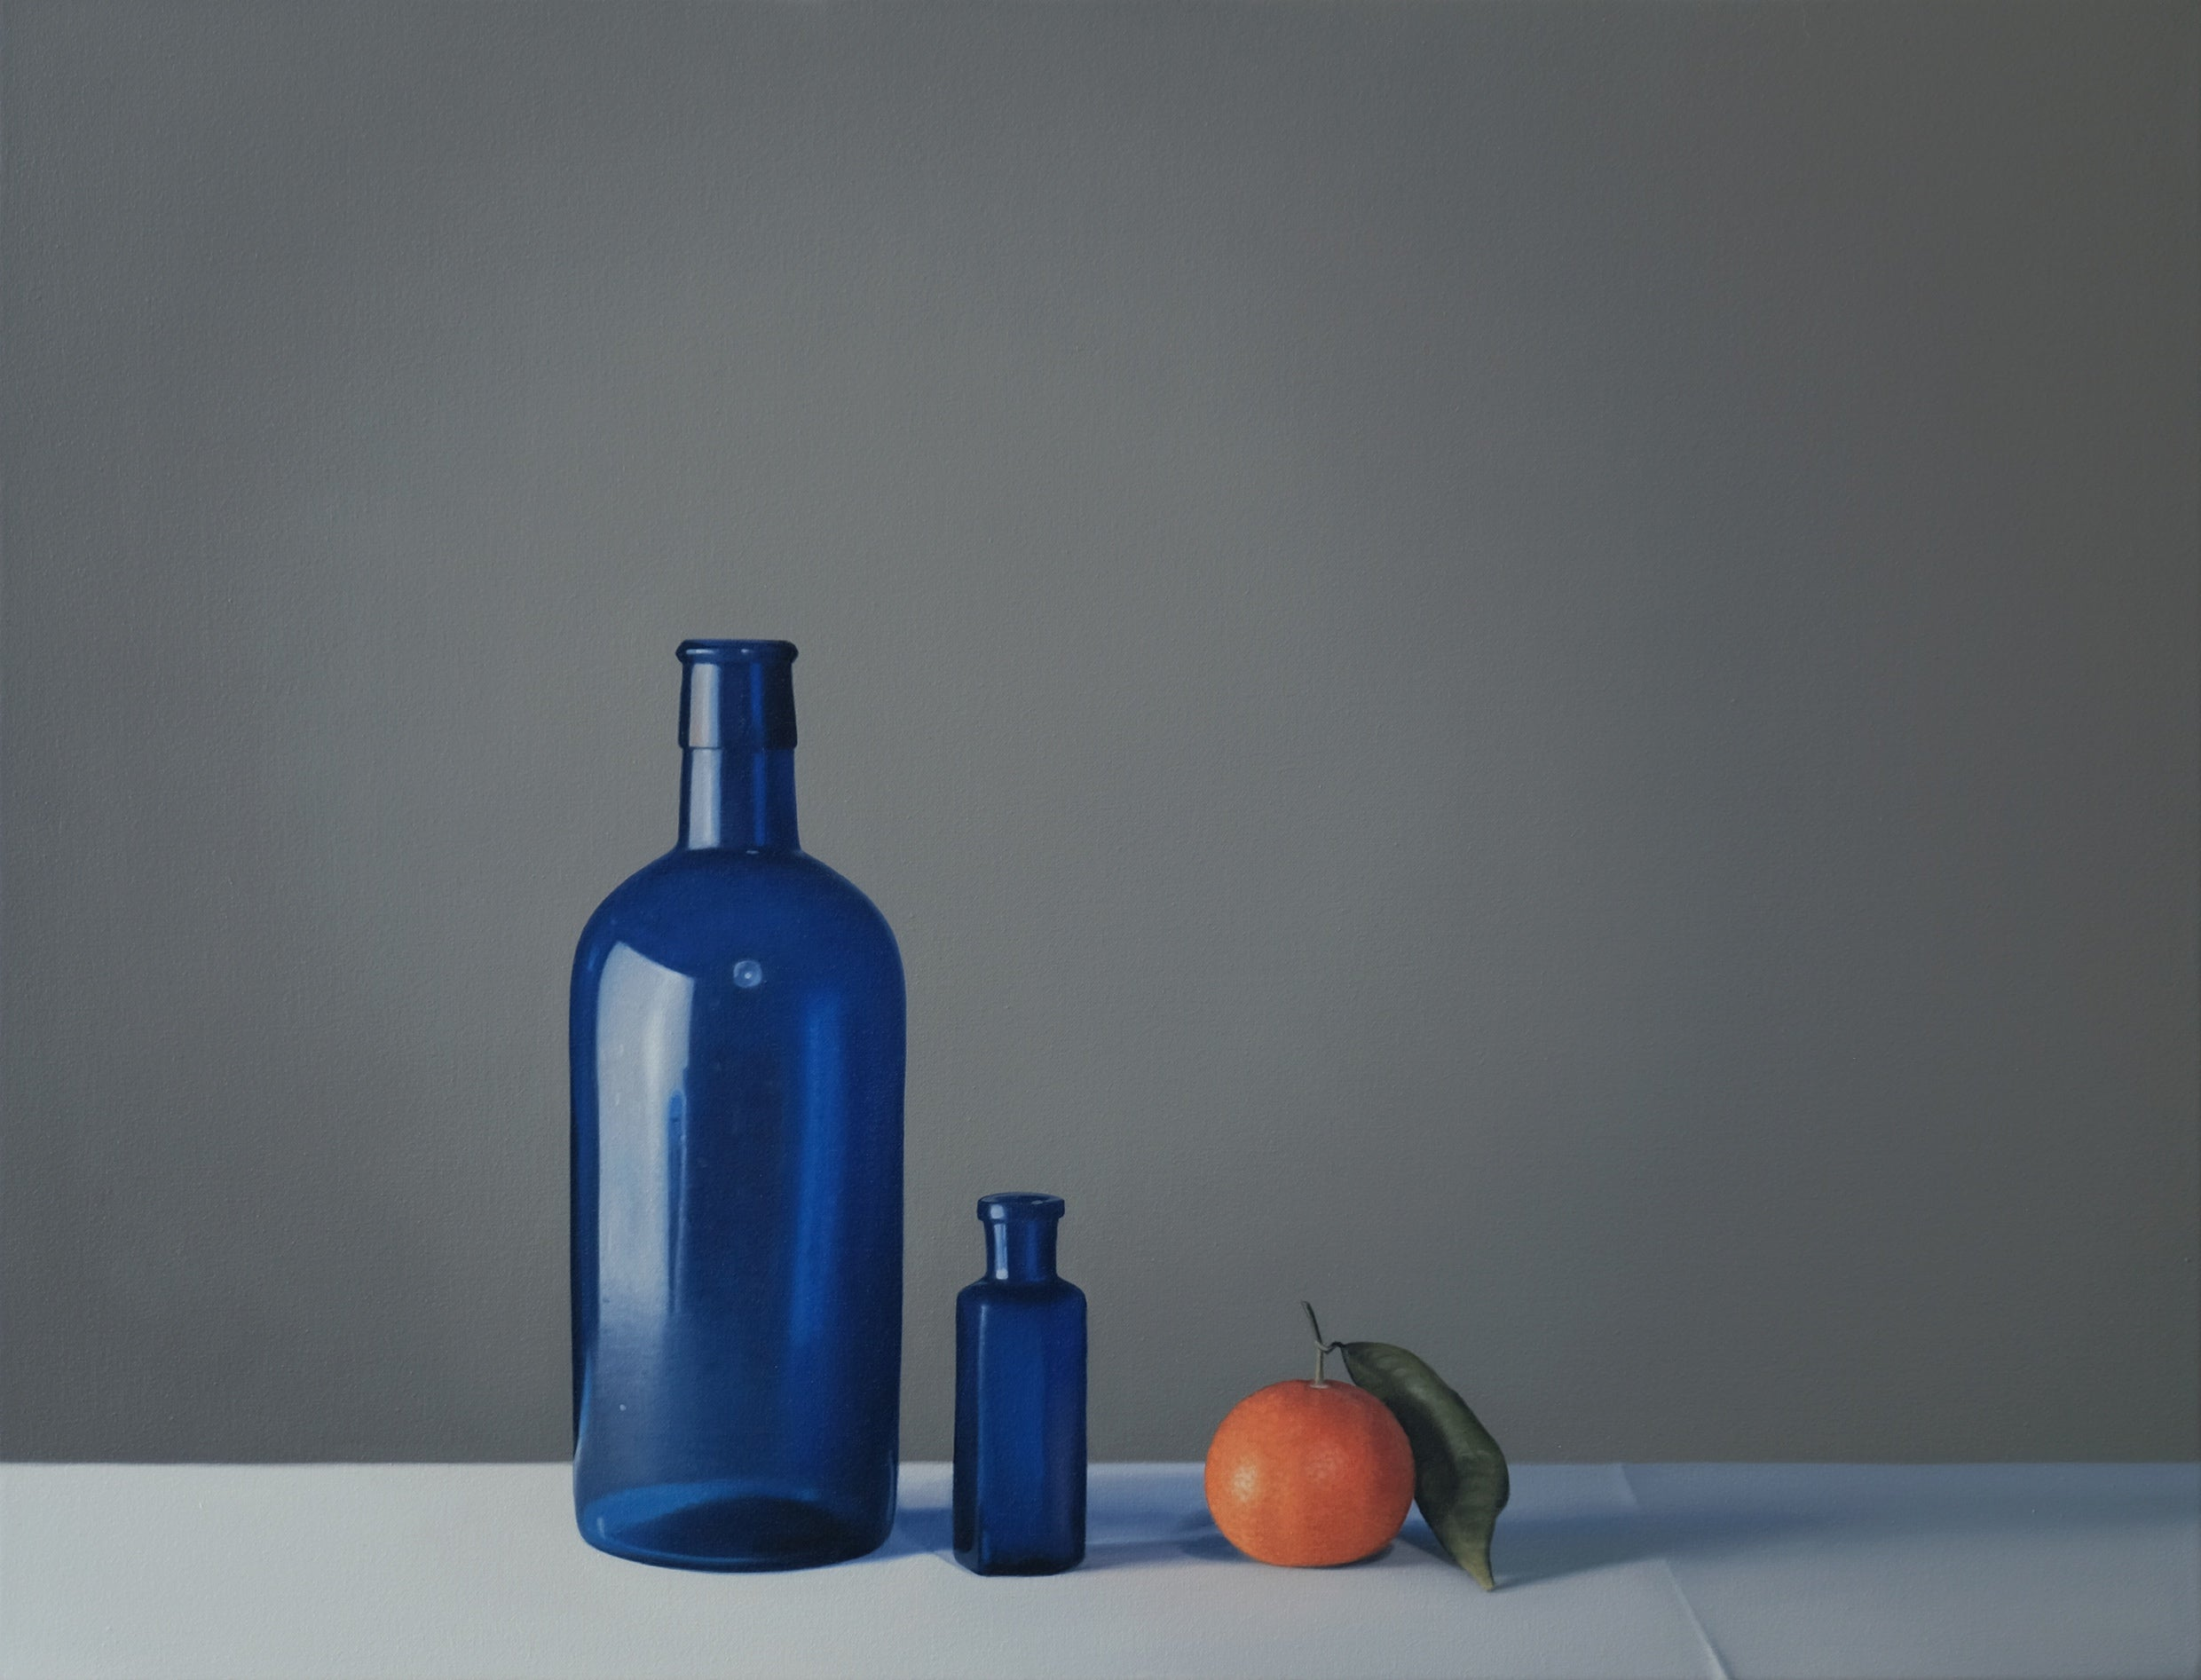 Still Life with Two Blue Glass Bottles and Clementine